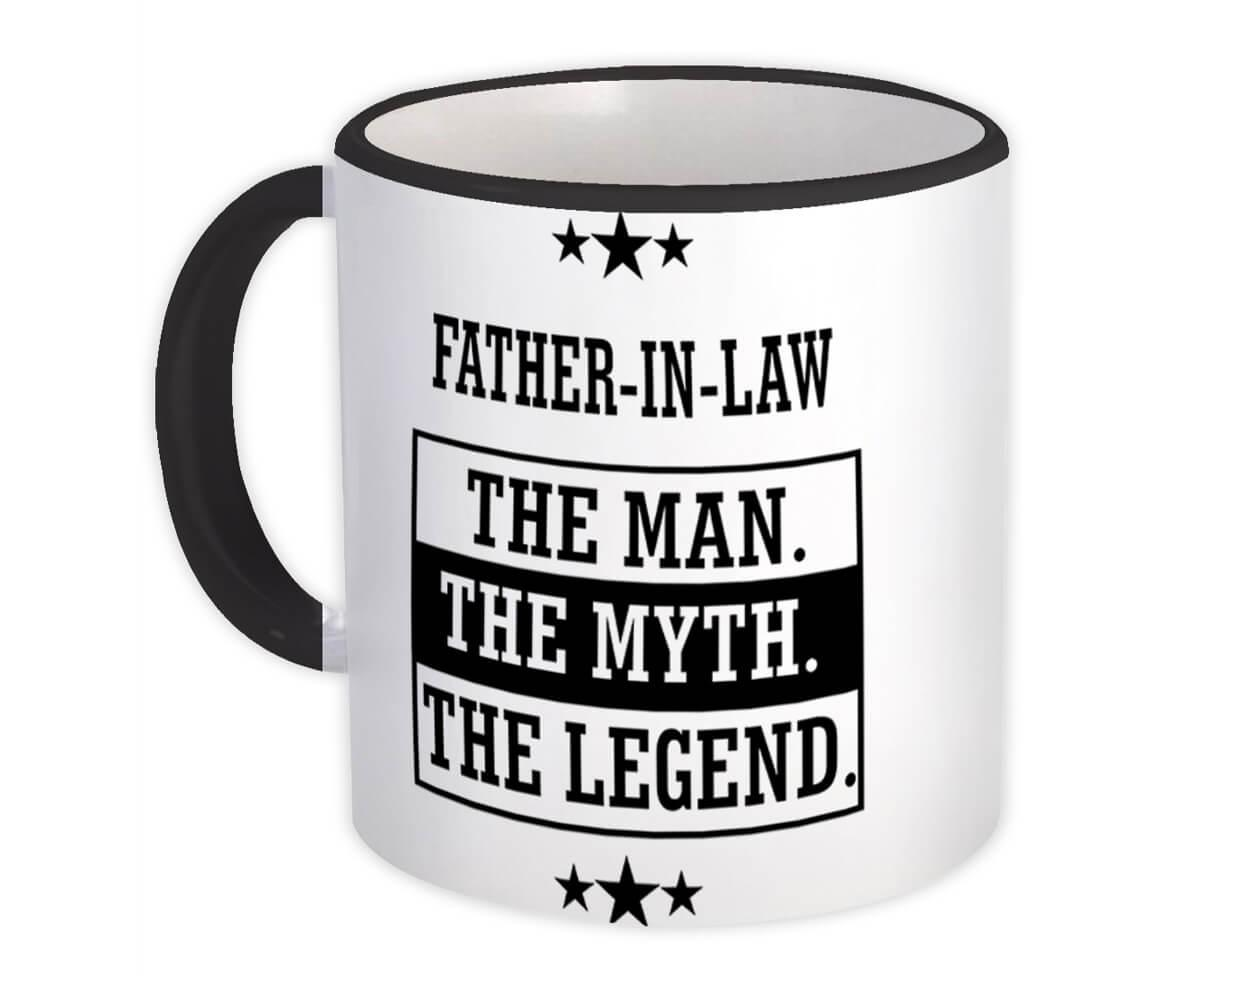 FATHER-IN-LAW : Gift Mug The Man Myth Legend Family Christmas